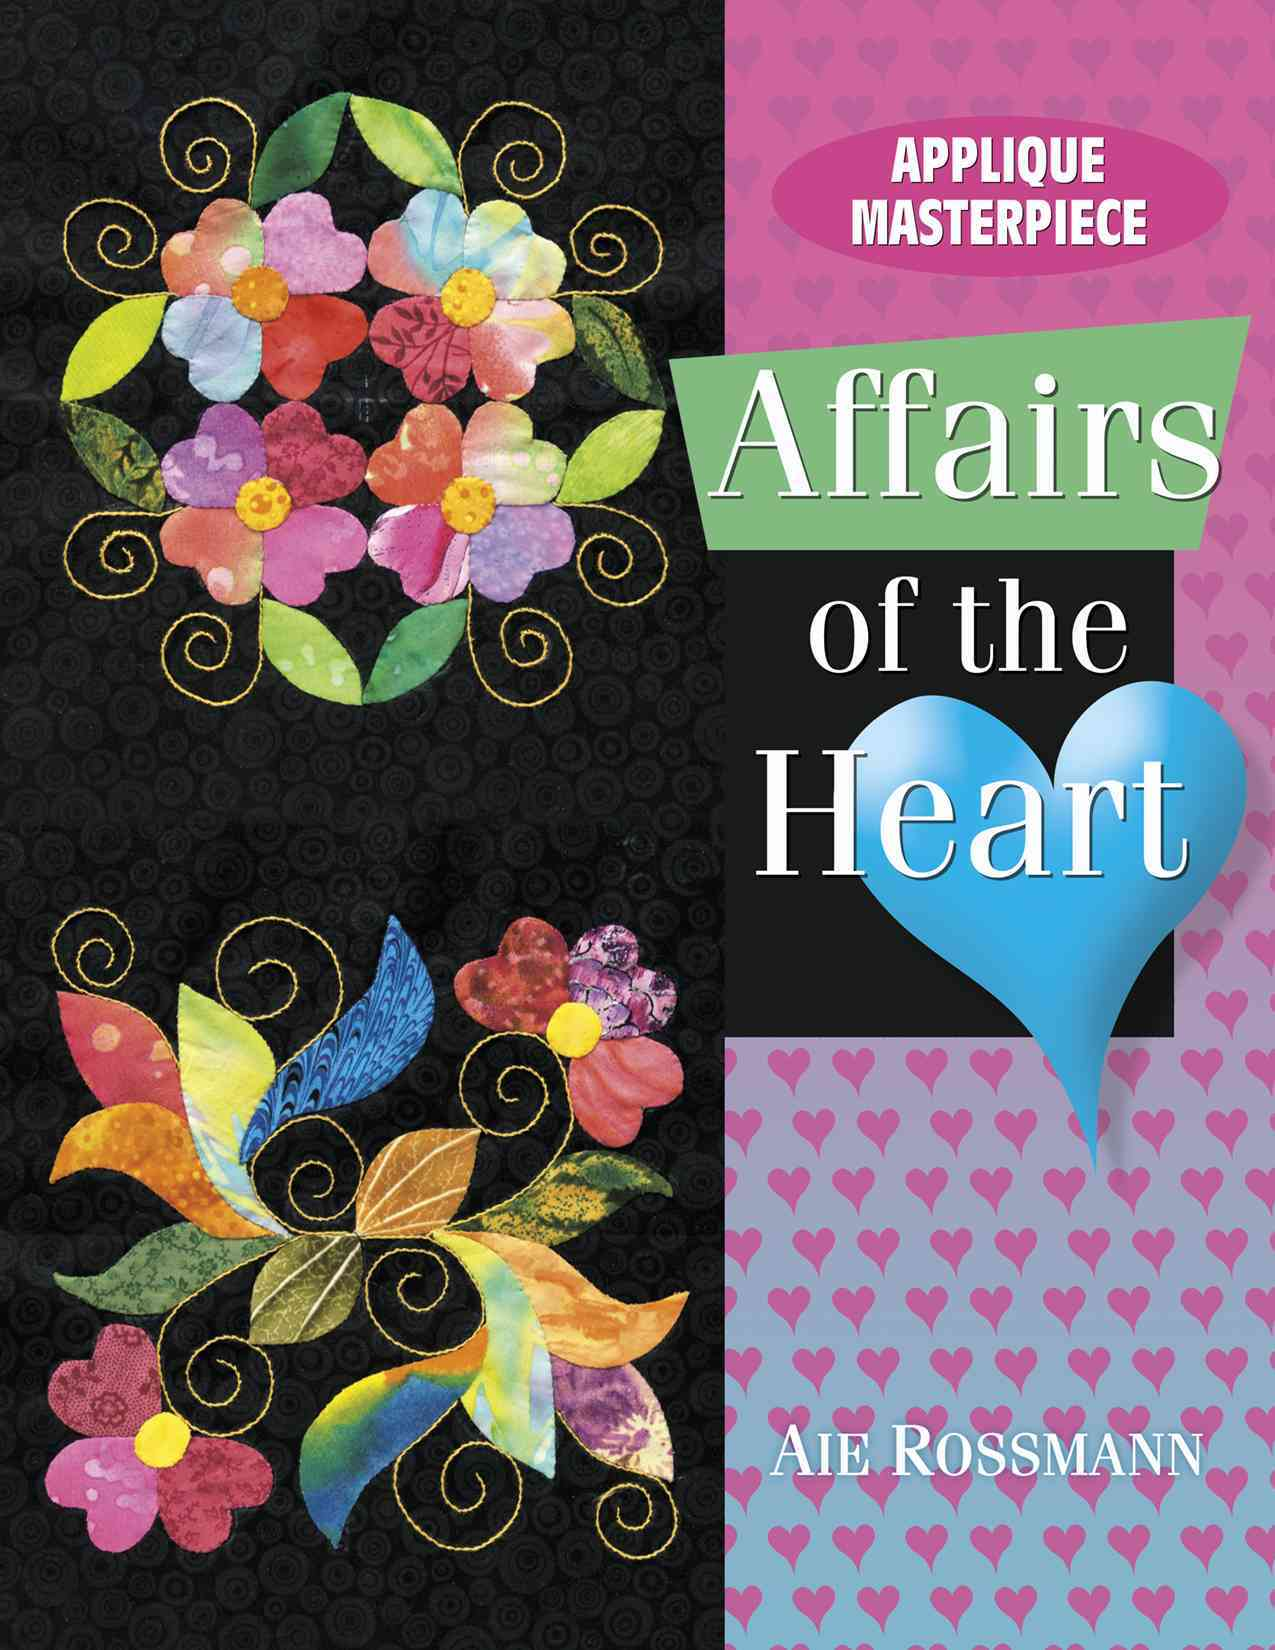 Applique Masterpiece: Affairs of the Heart (Paperback)